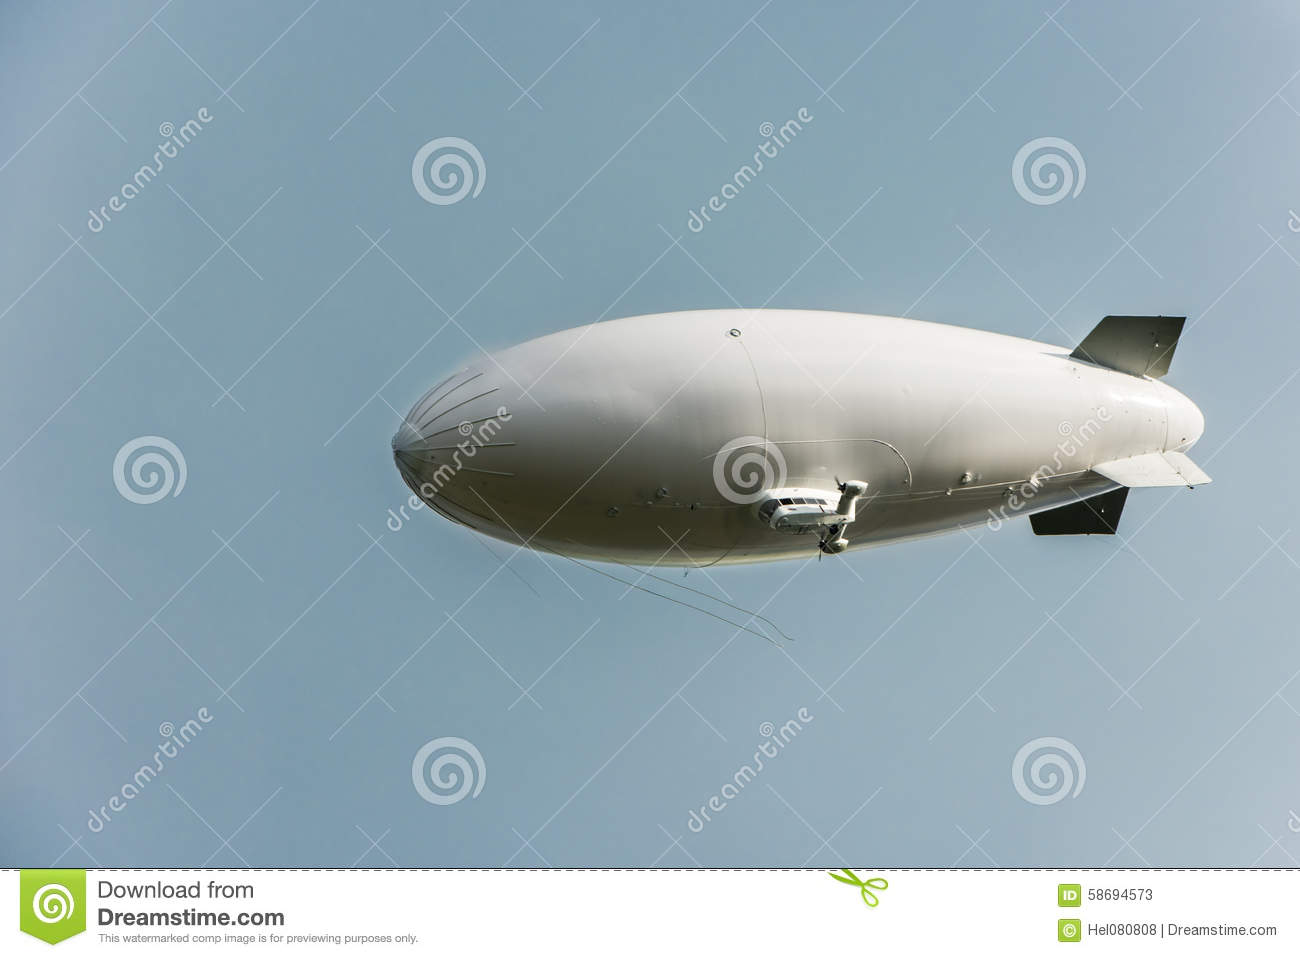 Zeppelin stock image  Image of tail, antenna, cabin, nose - 58694573